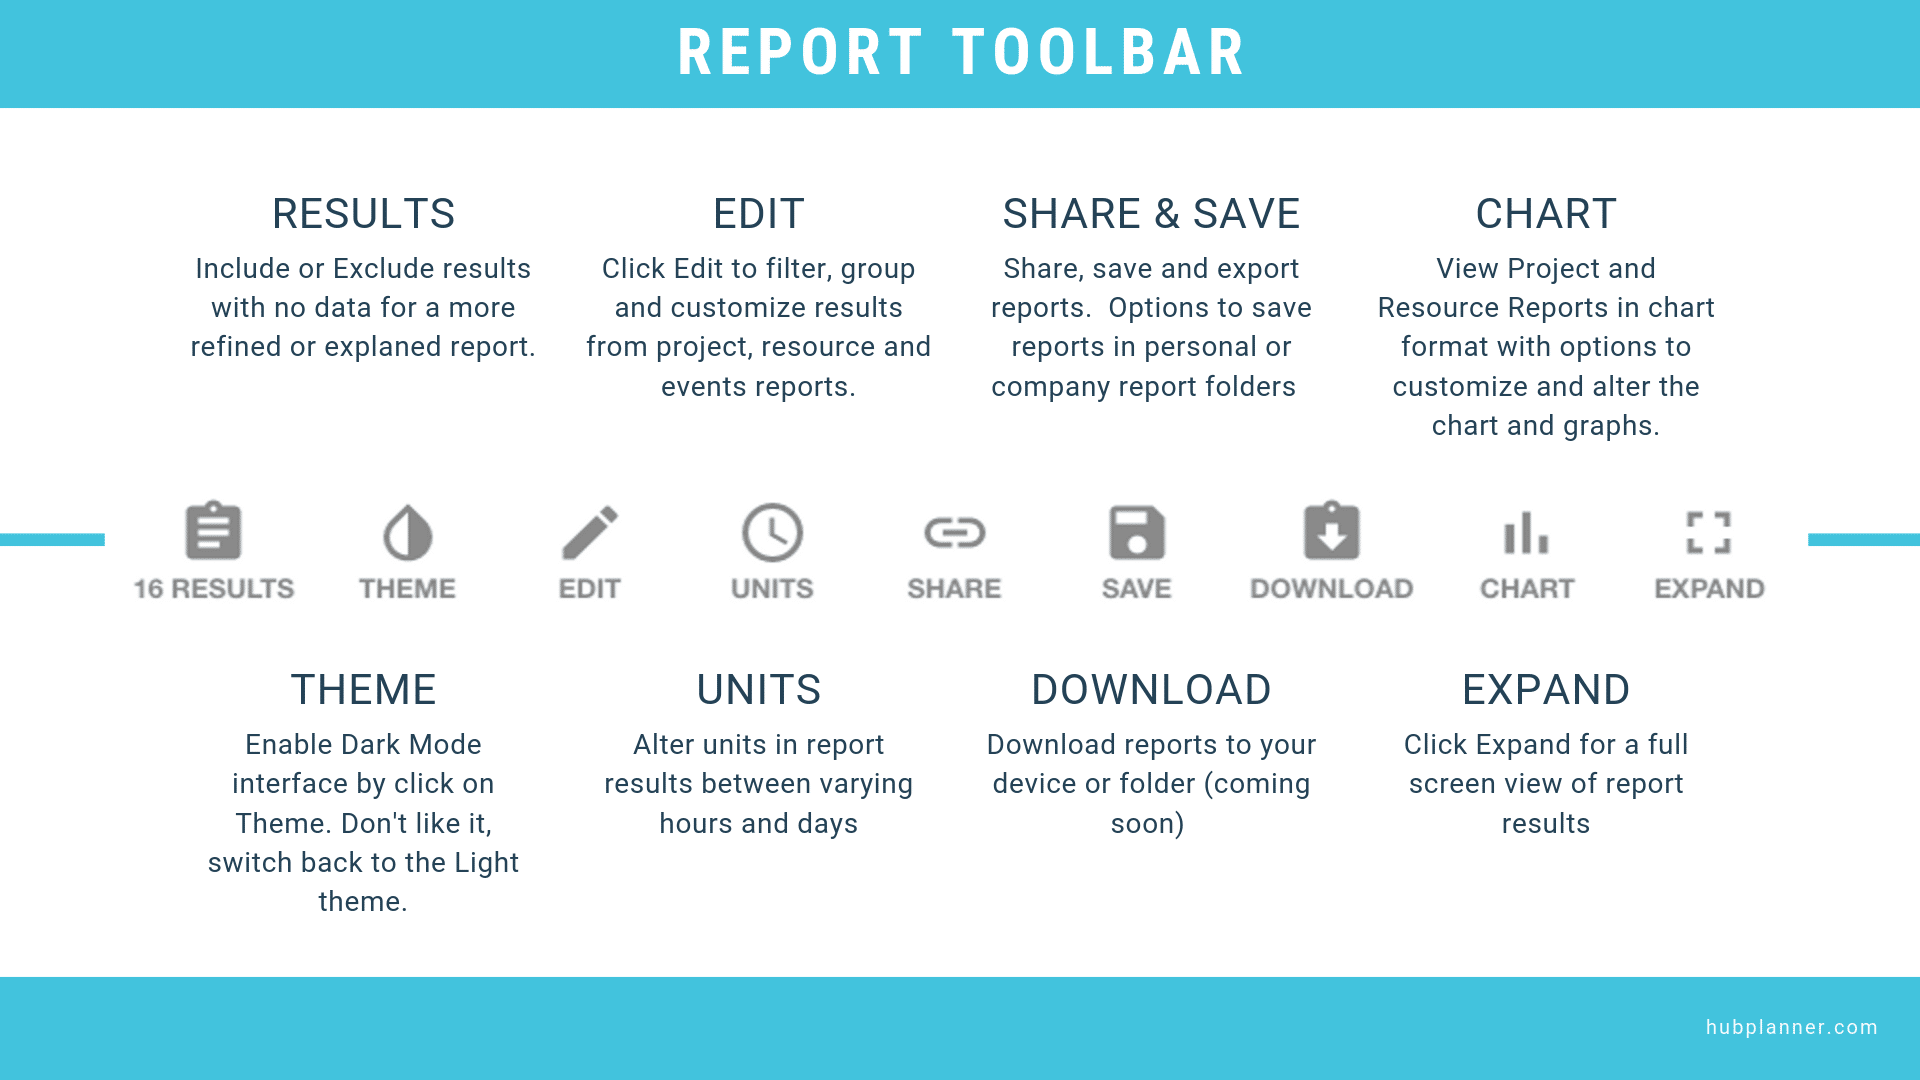 Project and Resource Reports_Hub_Planner_Report_Toolbar